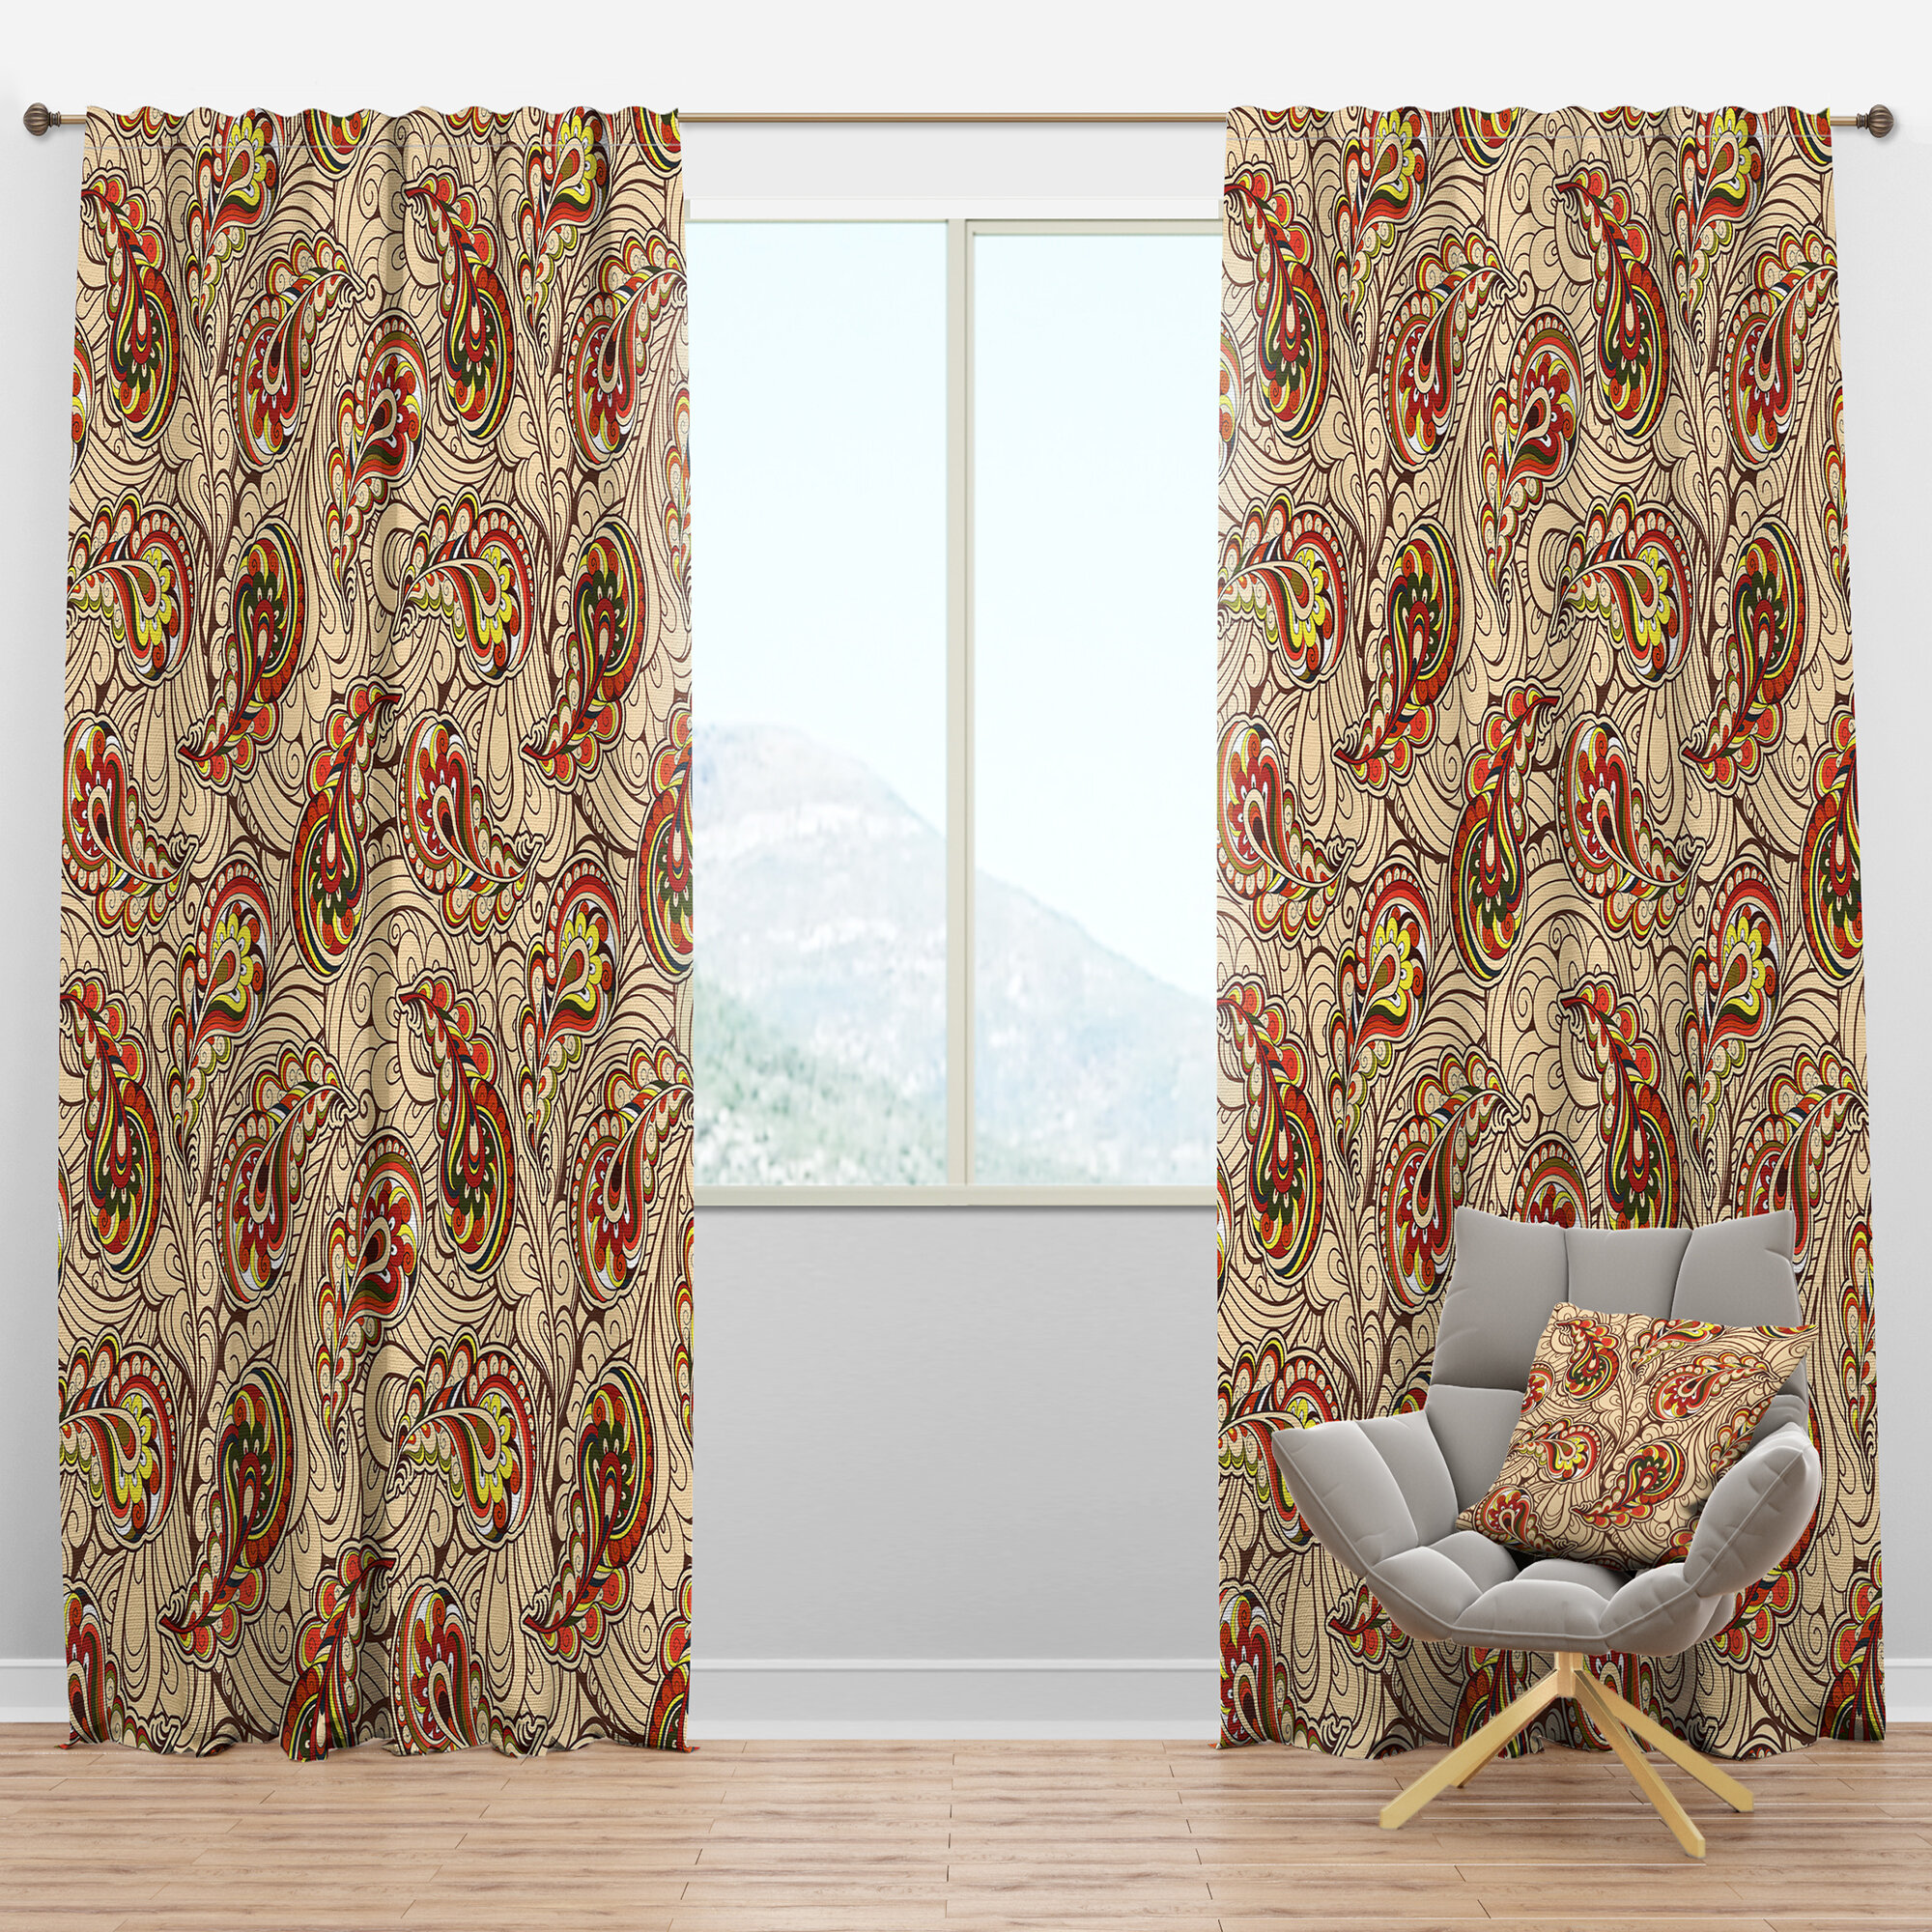 East Urban Home Autumn Paisley Semi Sheer Thermal Rod Pocket Curtain Panels Wayfair